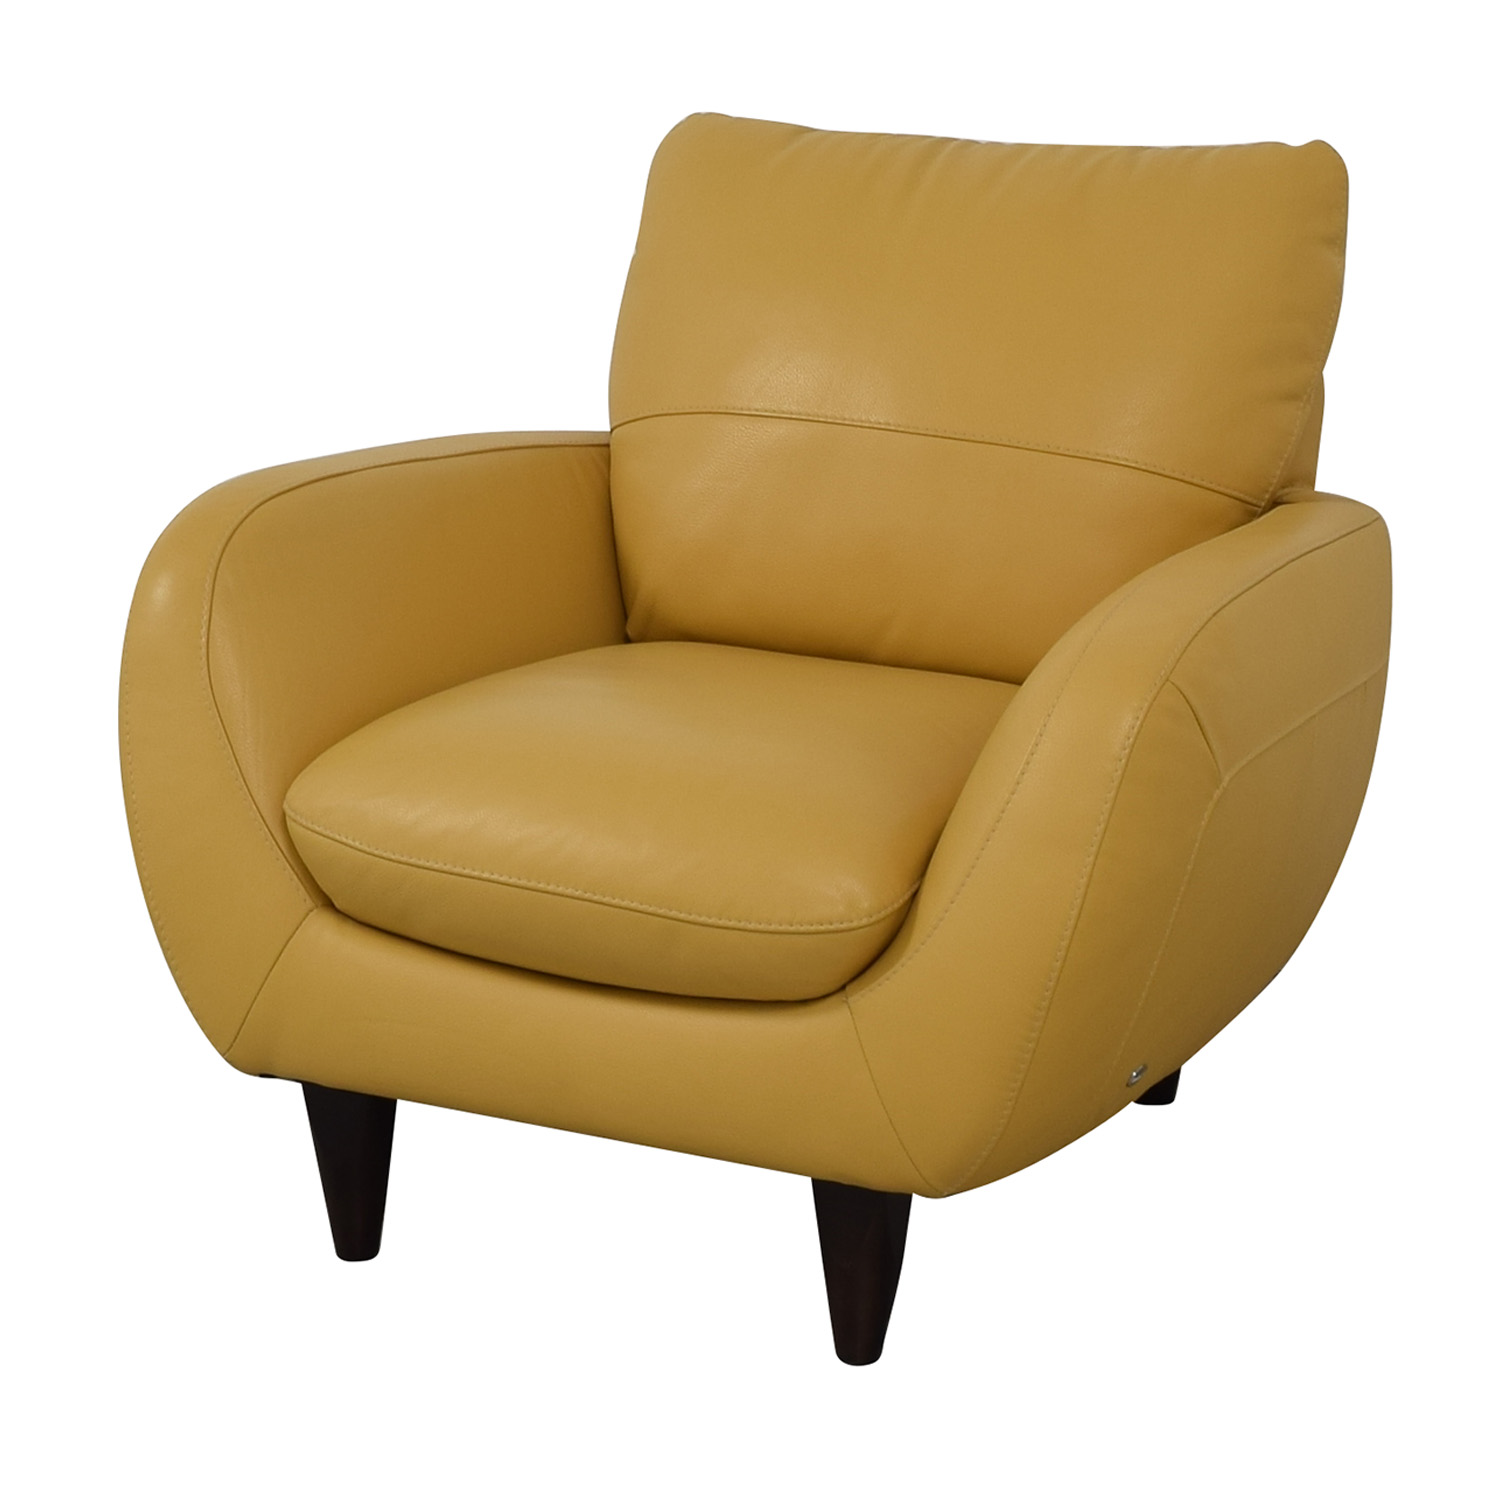 Italsofa Barrel Chair Review Home Co